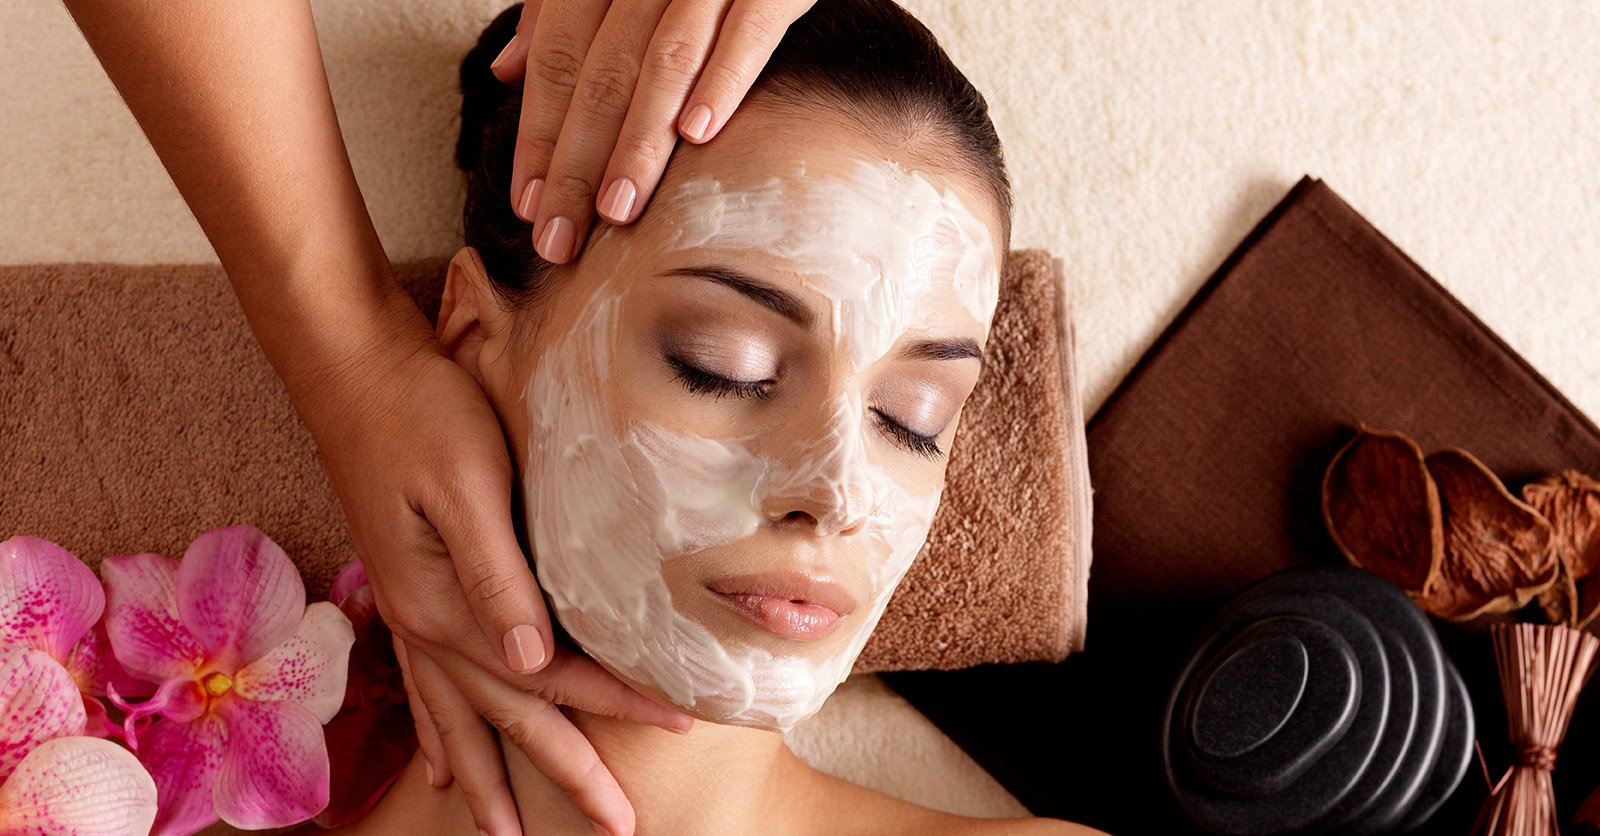 Get a facial done by Purty Day Spa in Yorba Linda, California